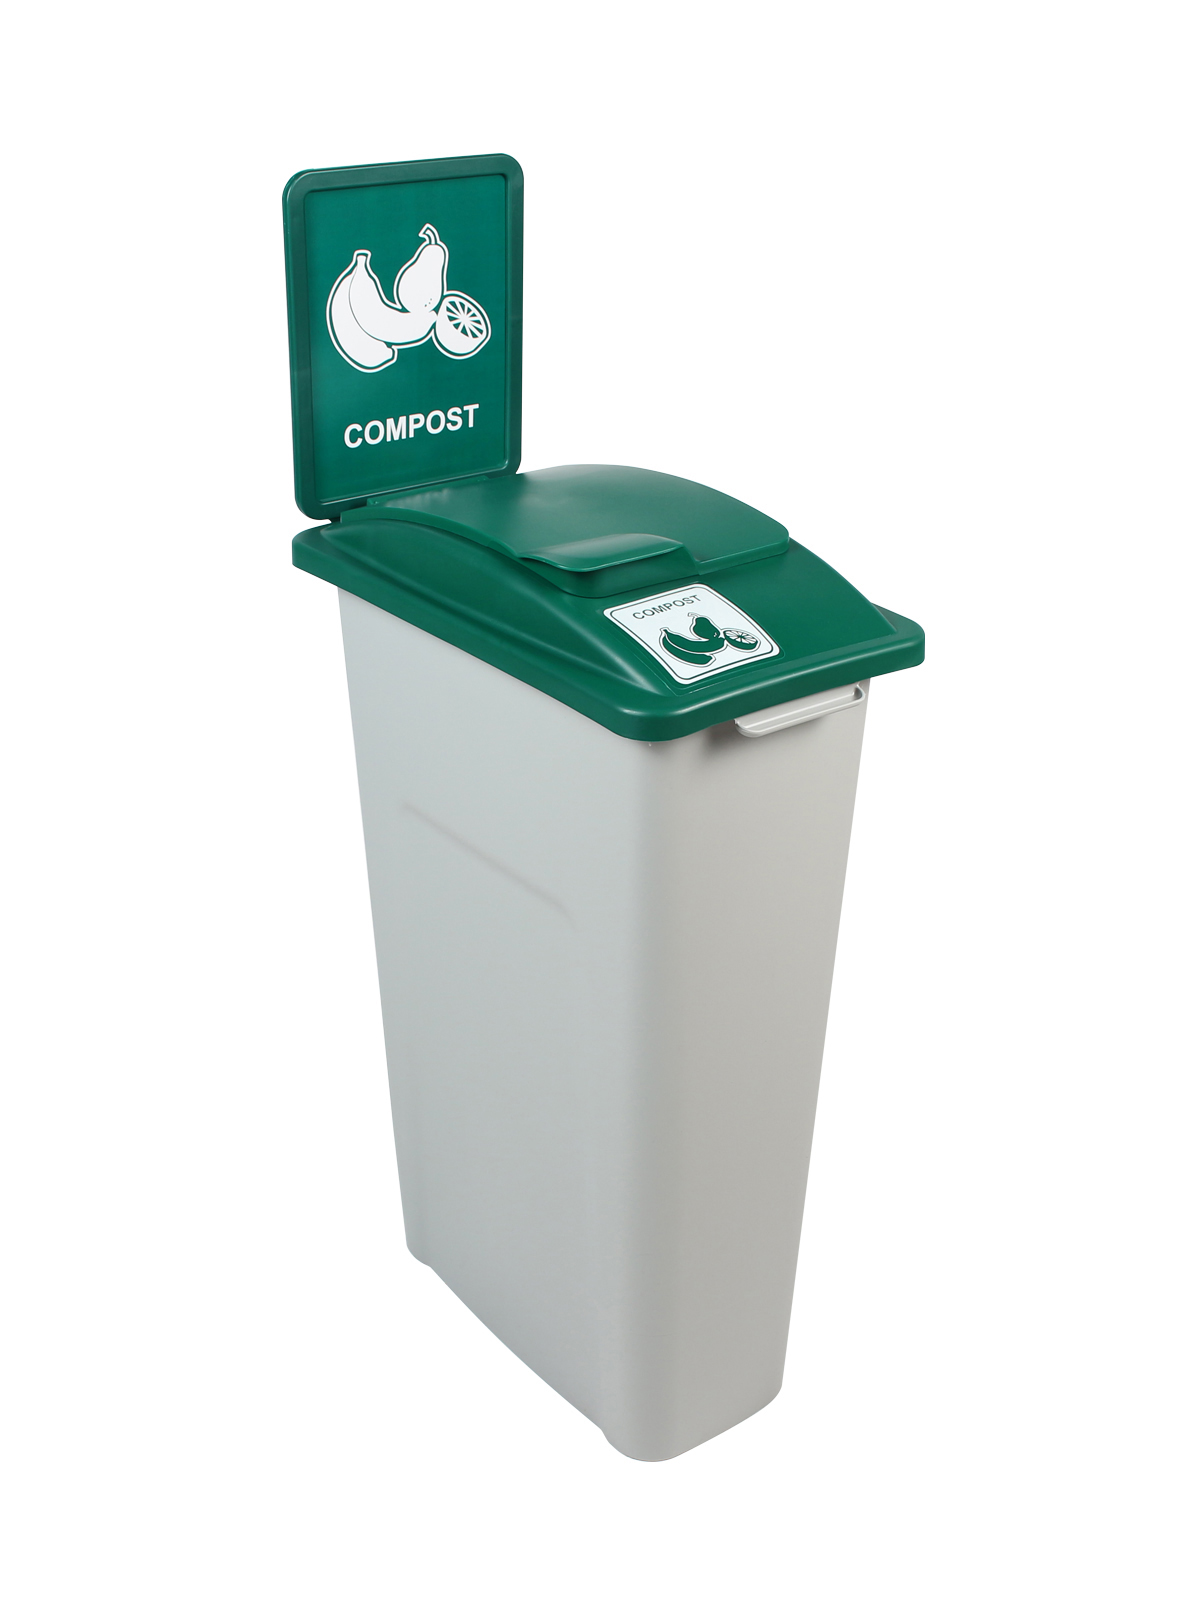 WASTE WATCHER - Single - Compost - Solid Lift - Grey-Green